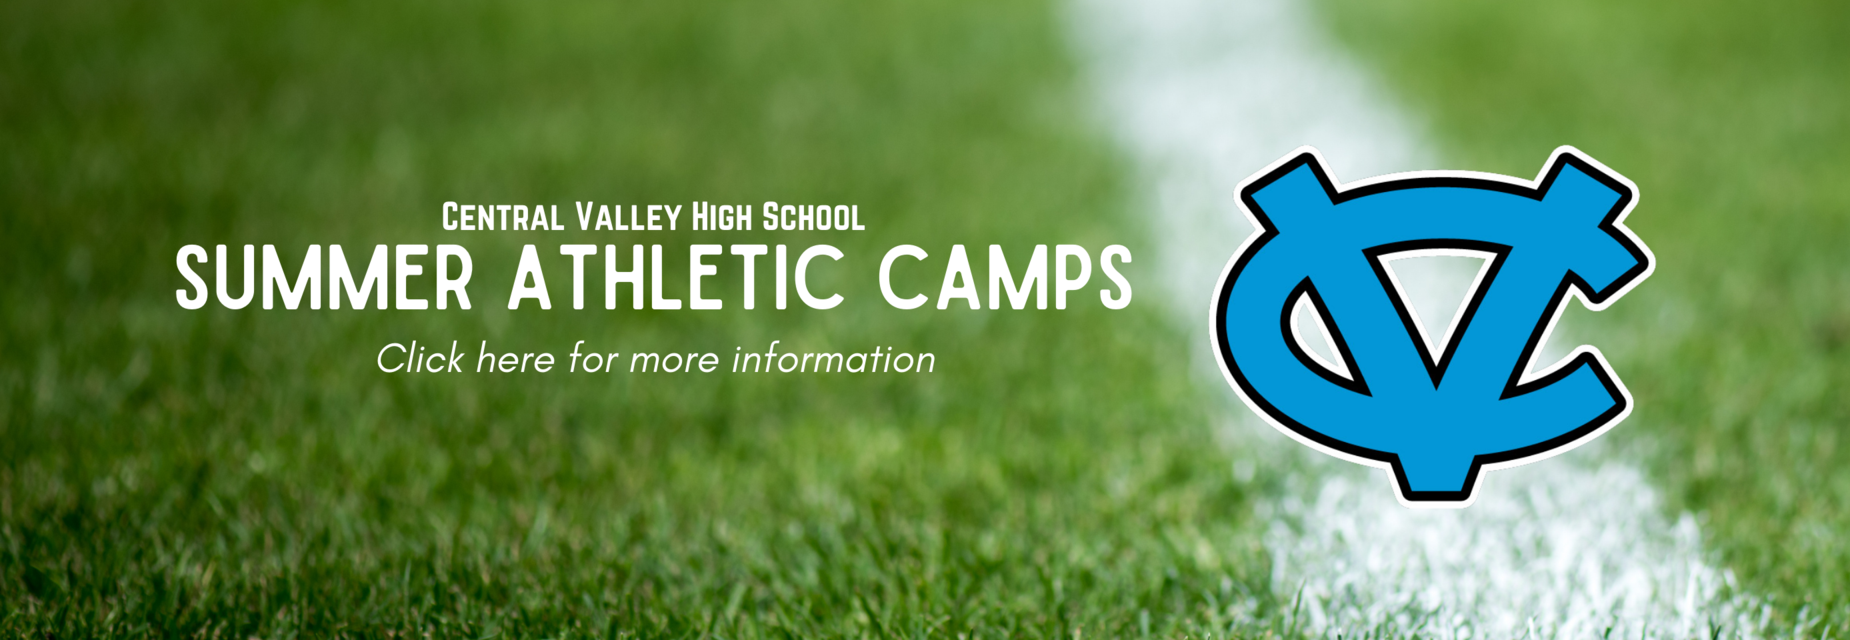 Summer athletic camp info